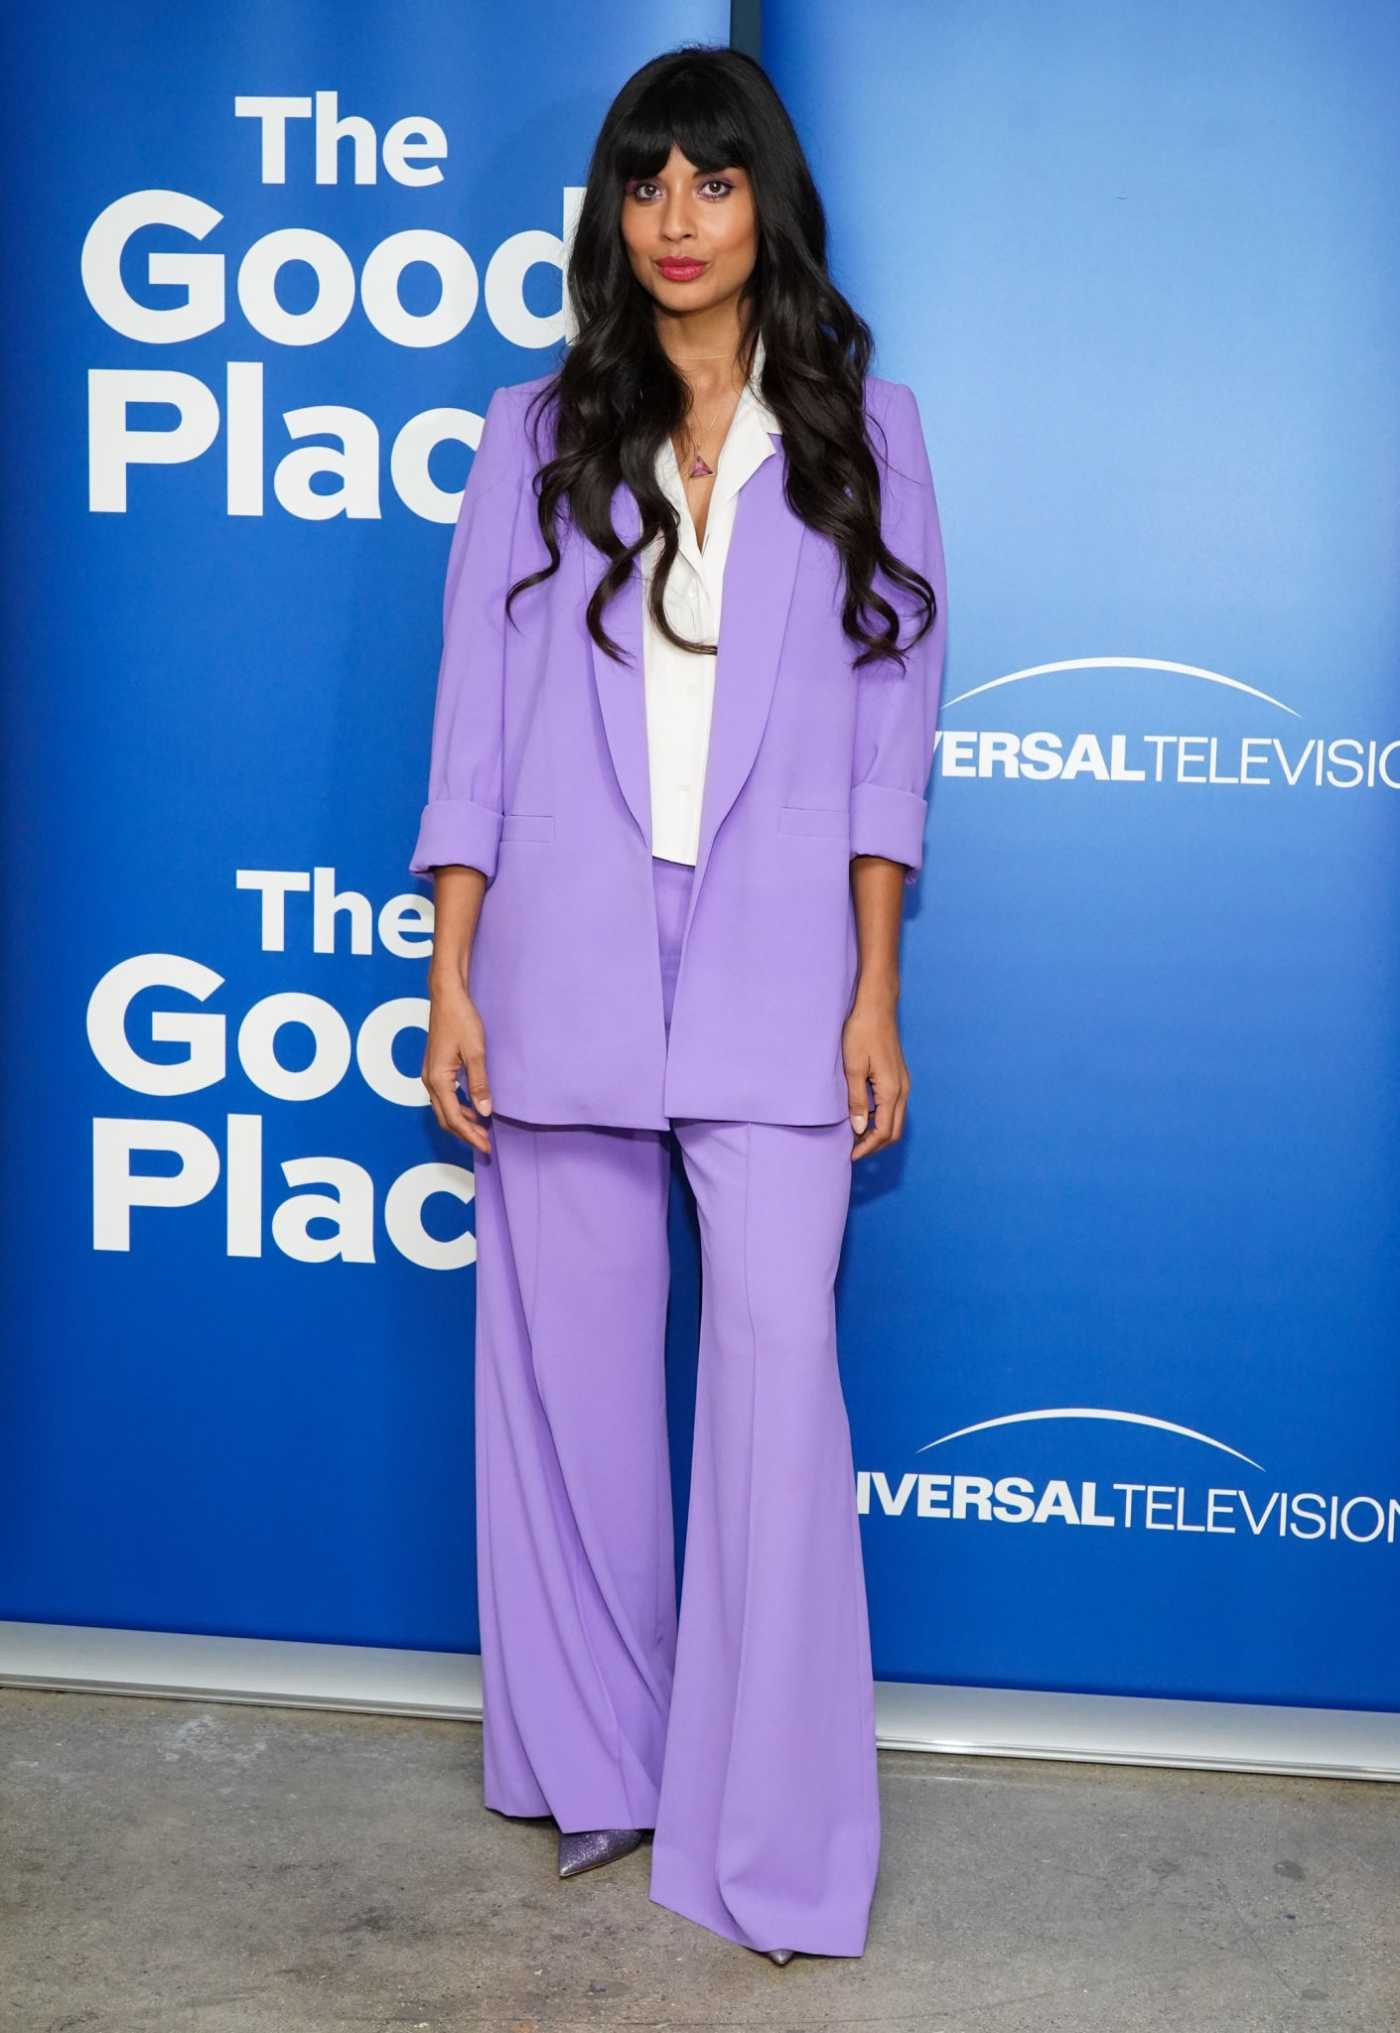 Jameela Jamil Attends The Good Place FYC Event in Los Angeles 06/17/2019